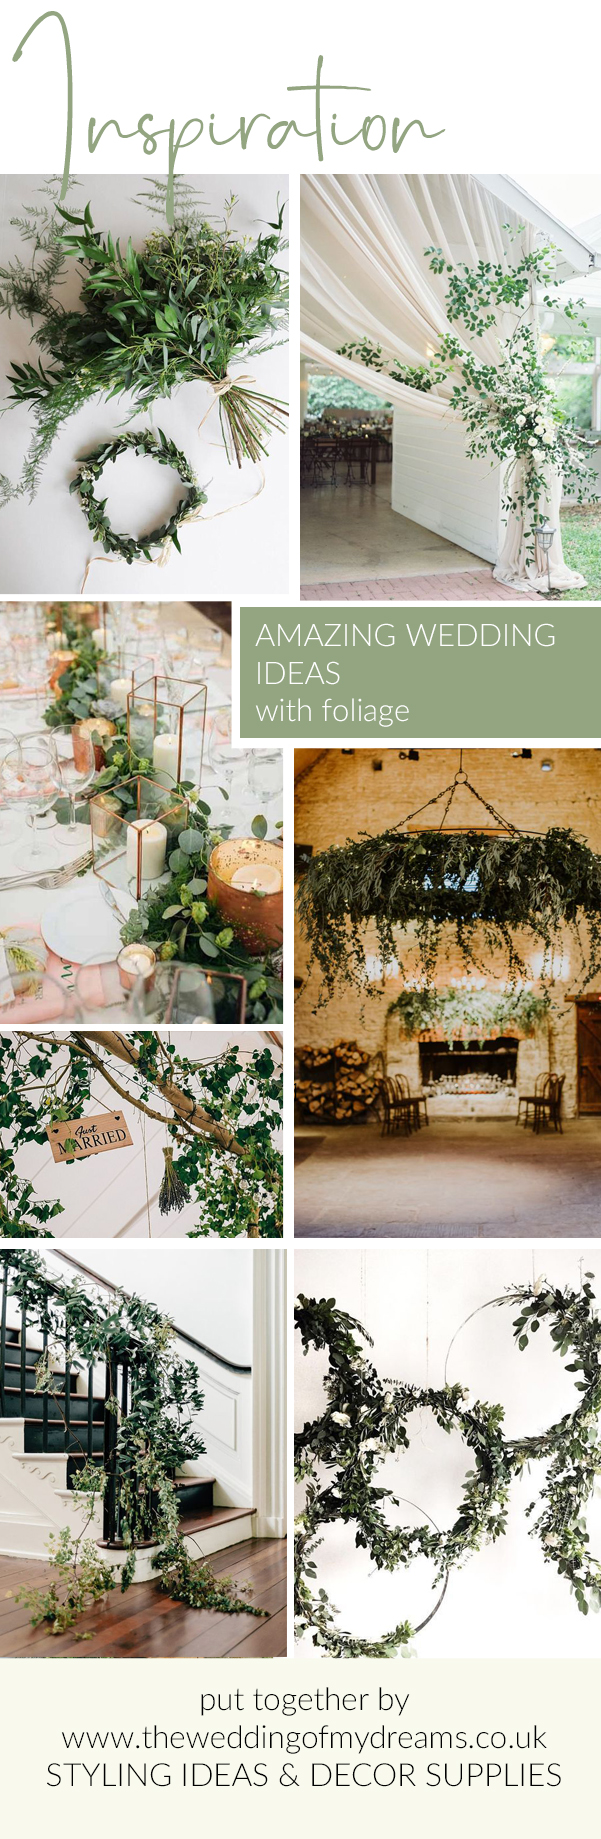 greenery foliage wedding ideas venue styling decorations The Wedding of my Dreams